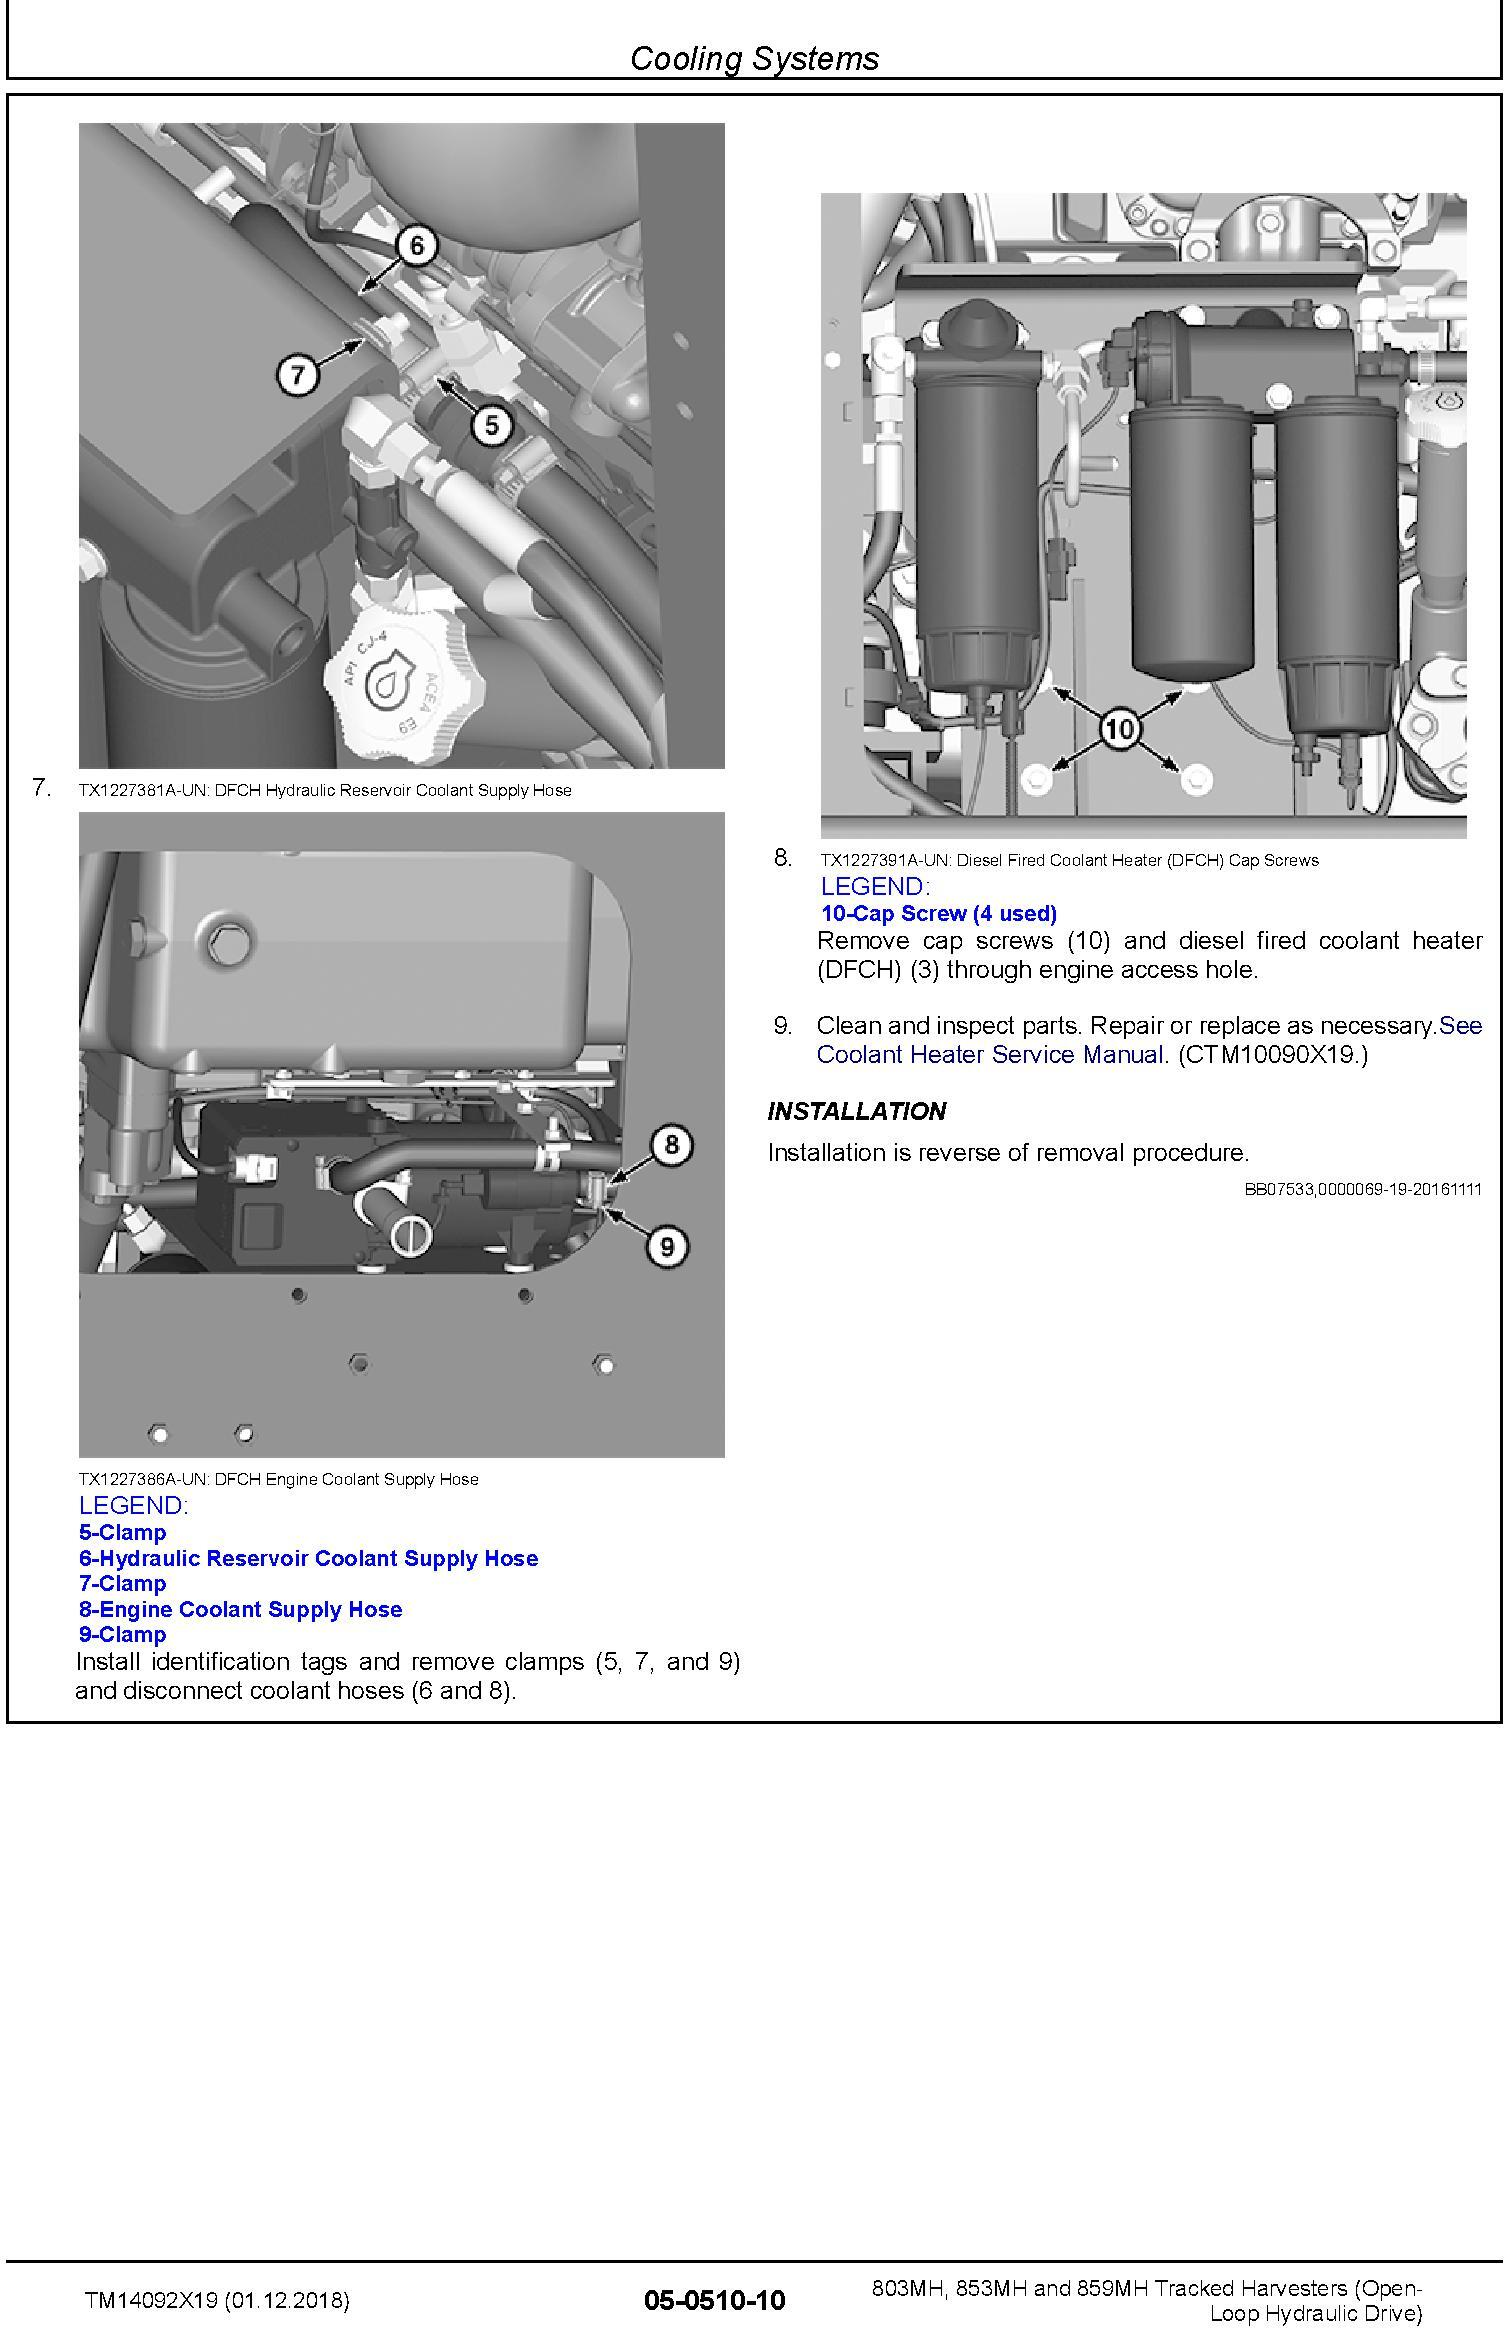 John Deere 803MH,853MH,859MH (SN. F293917-,L343918-) Harvesters (Open-Loop) Repair Manual TM14092X19 - 3